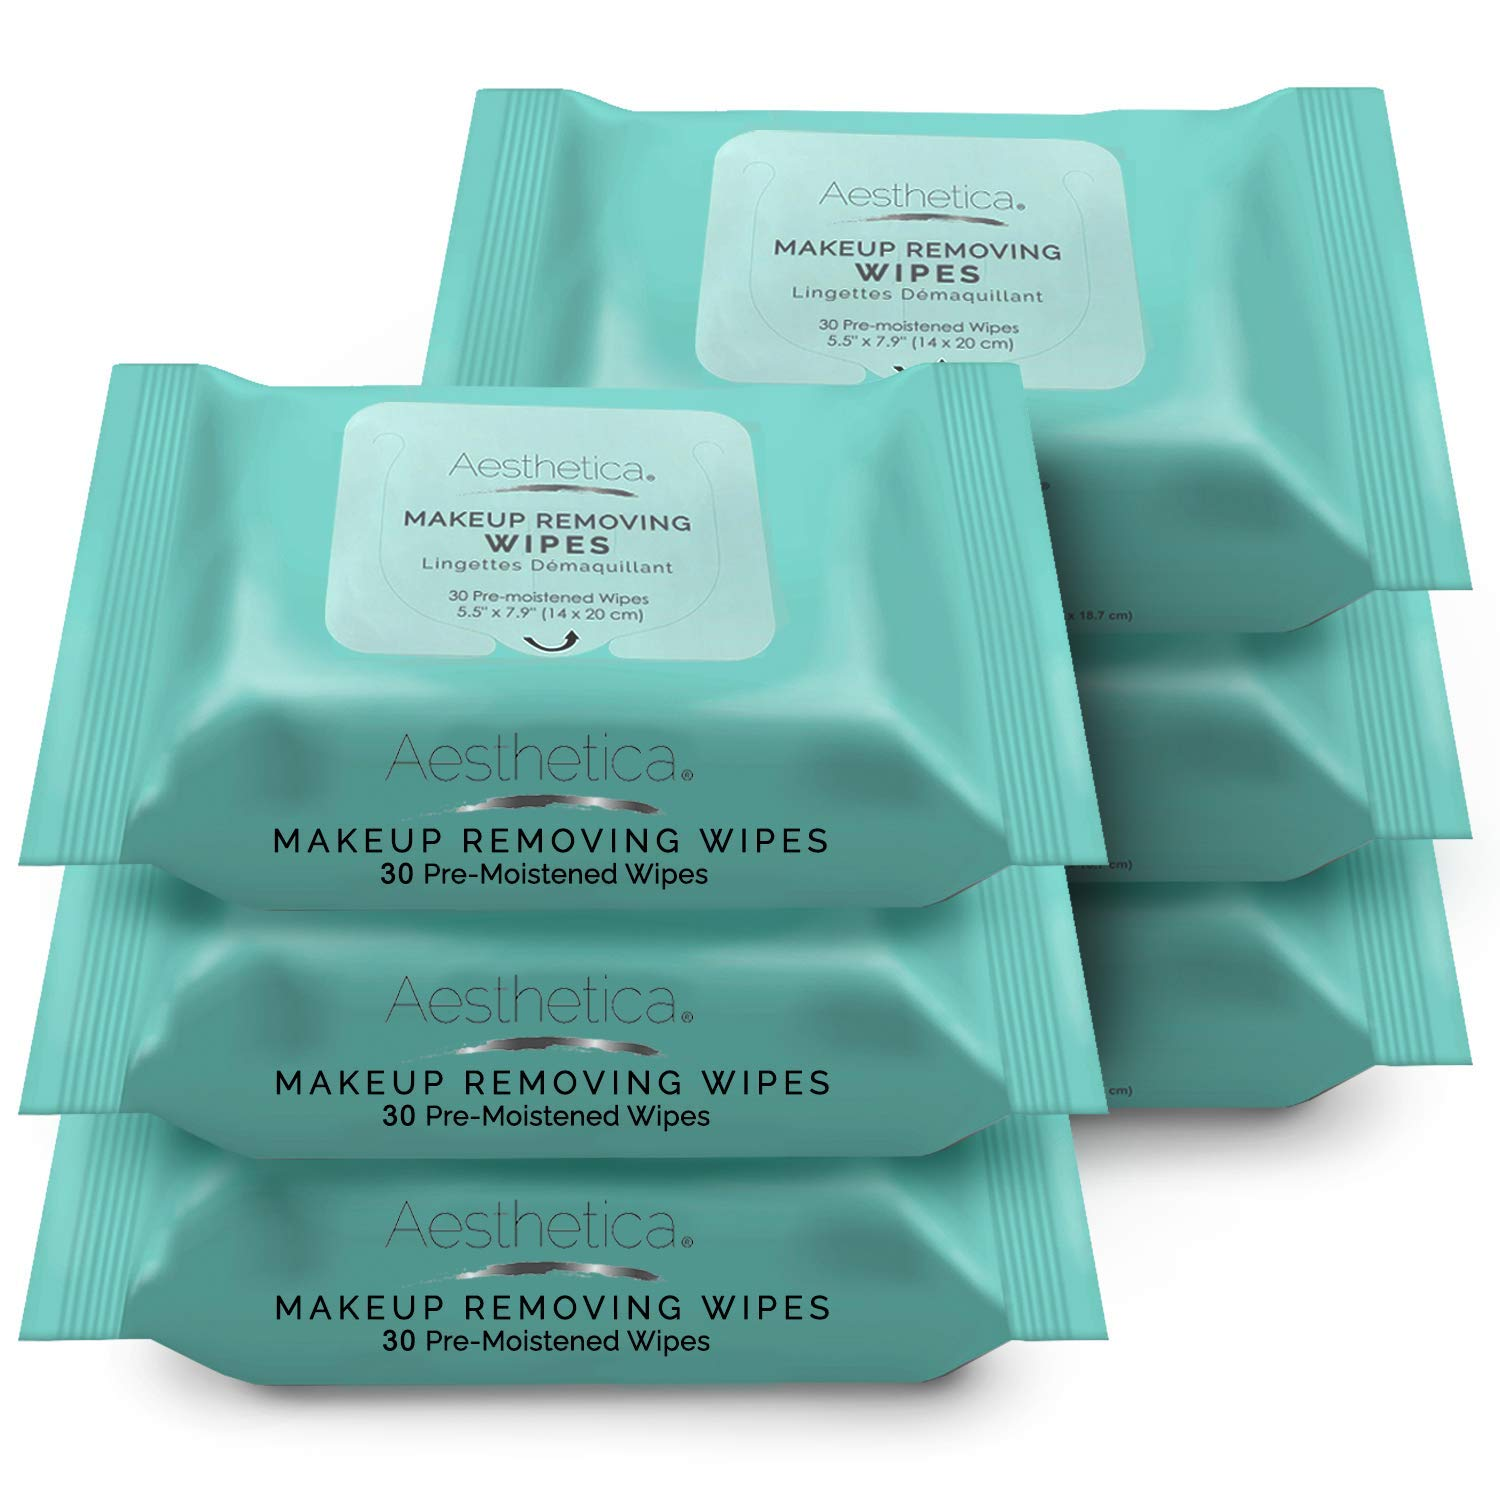 Aesthetica Makeup Removing Wipes - Facial & Eye Makeup Remover Wipes